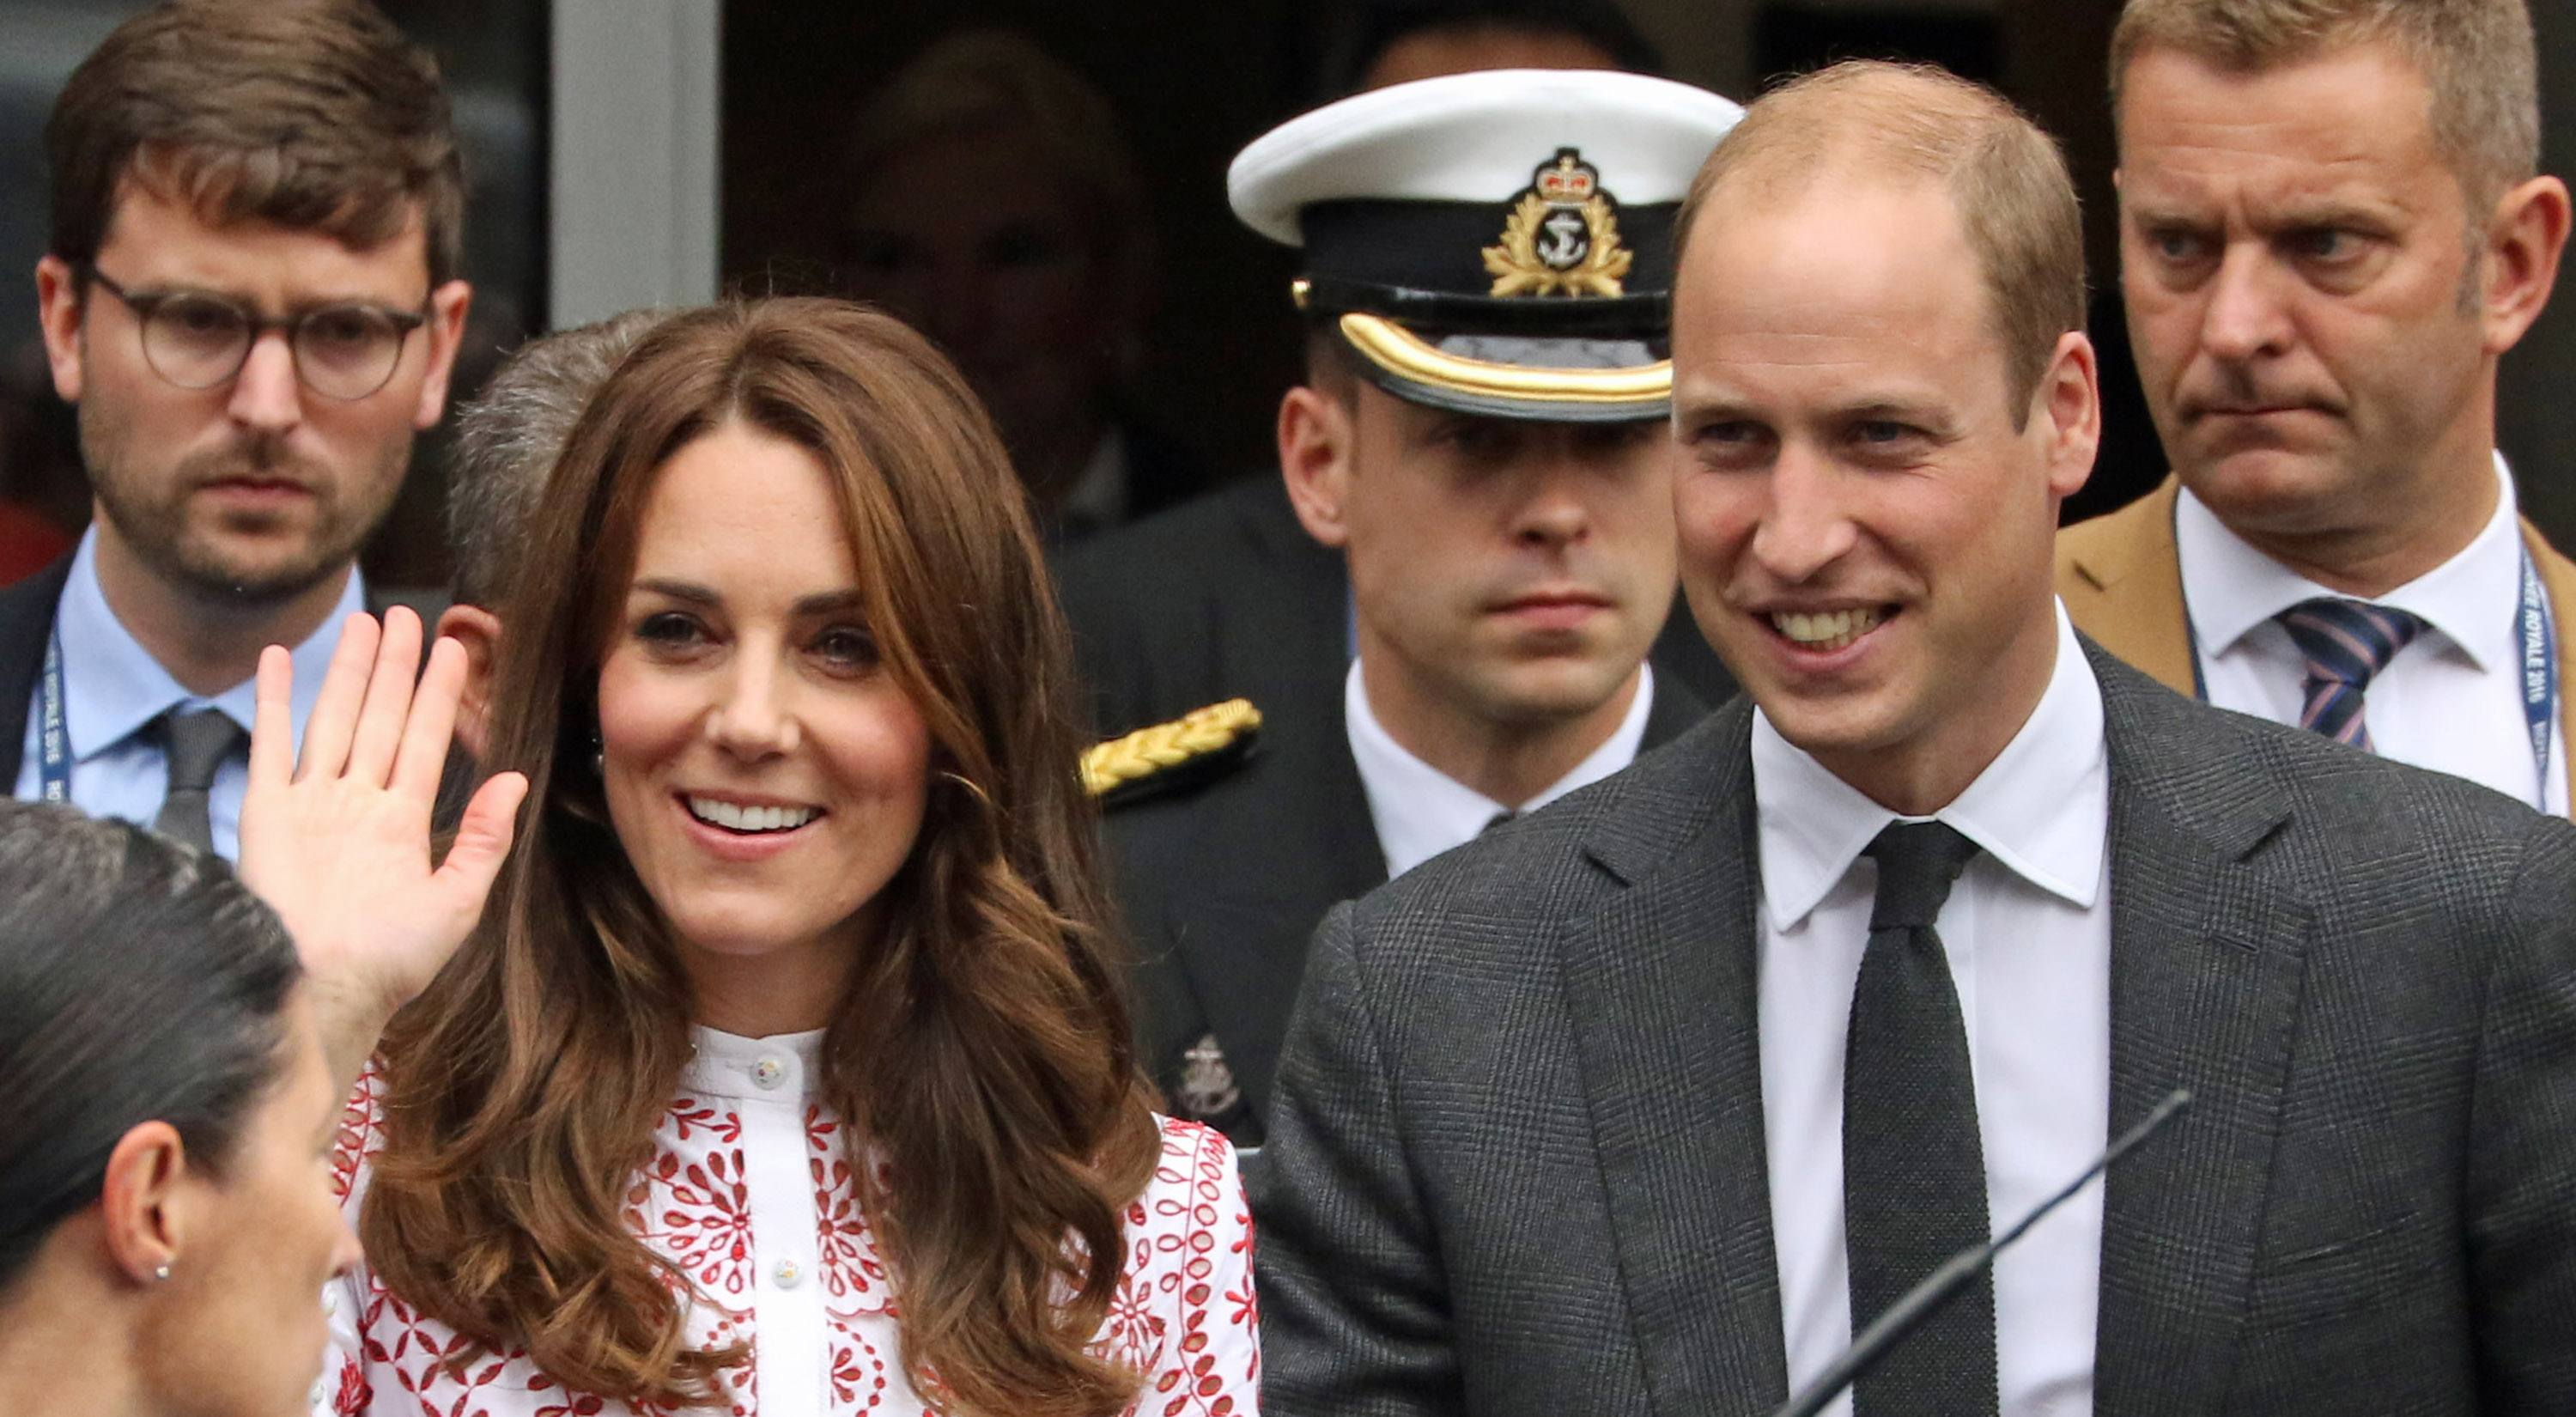 Royal tour: William and Kate's day in Vancouver (PHOTOS, VIDEO)